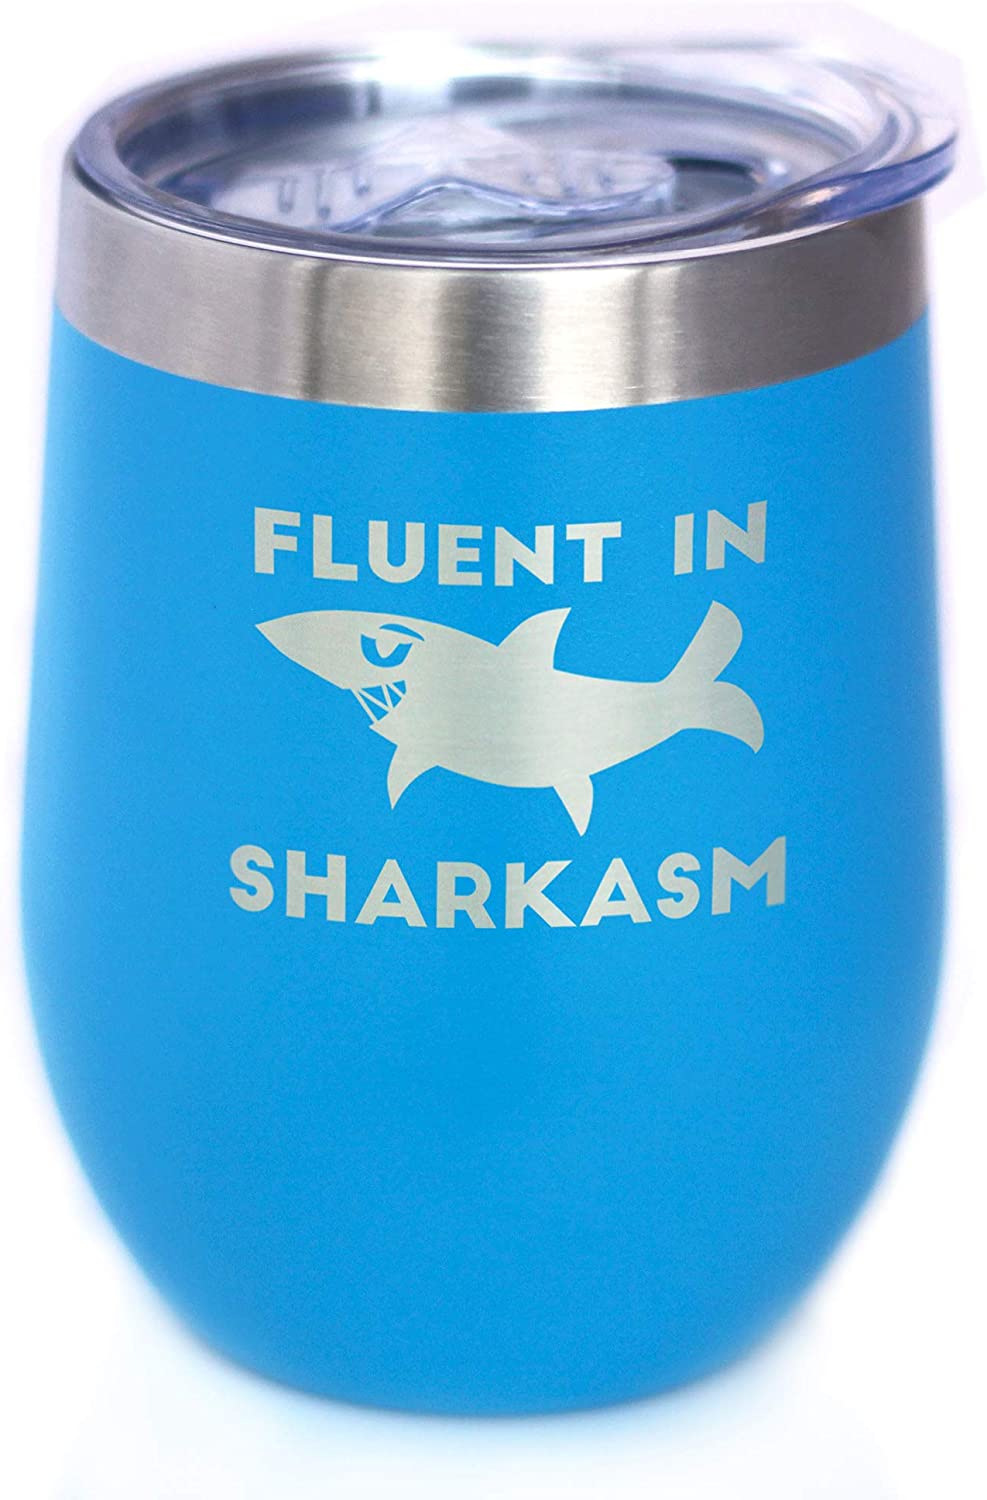 Fluent in Sharkasm - Funny Shark Wine Tumbler Glass with Sliding Lid - Stainless Steel Insulated Mug - Cute Shark Decor Gifts - Sky Blue